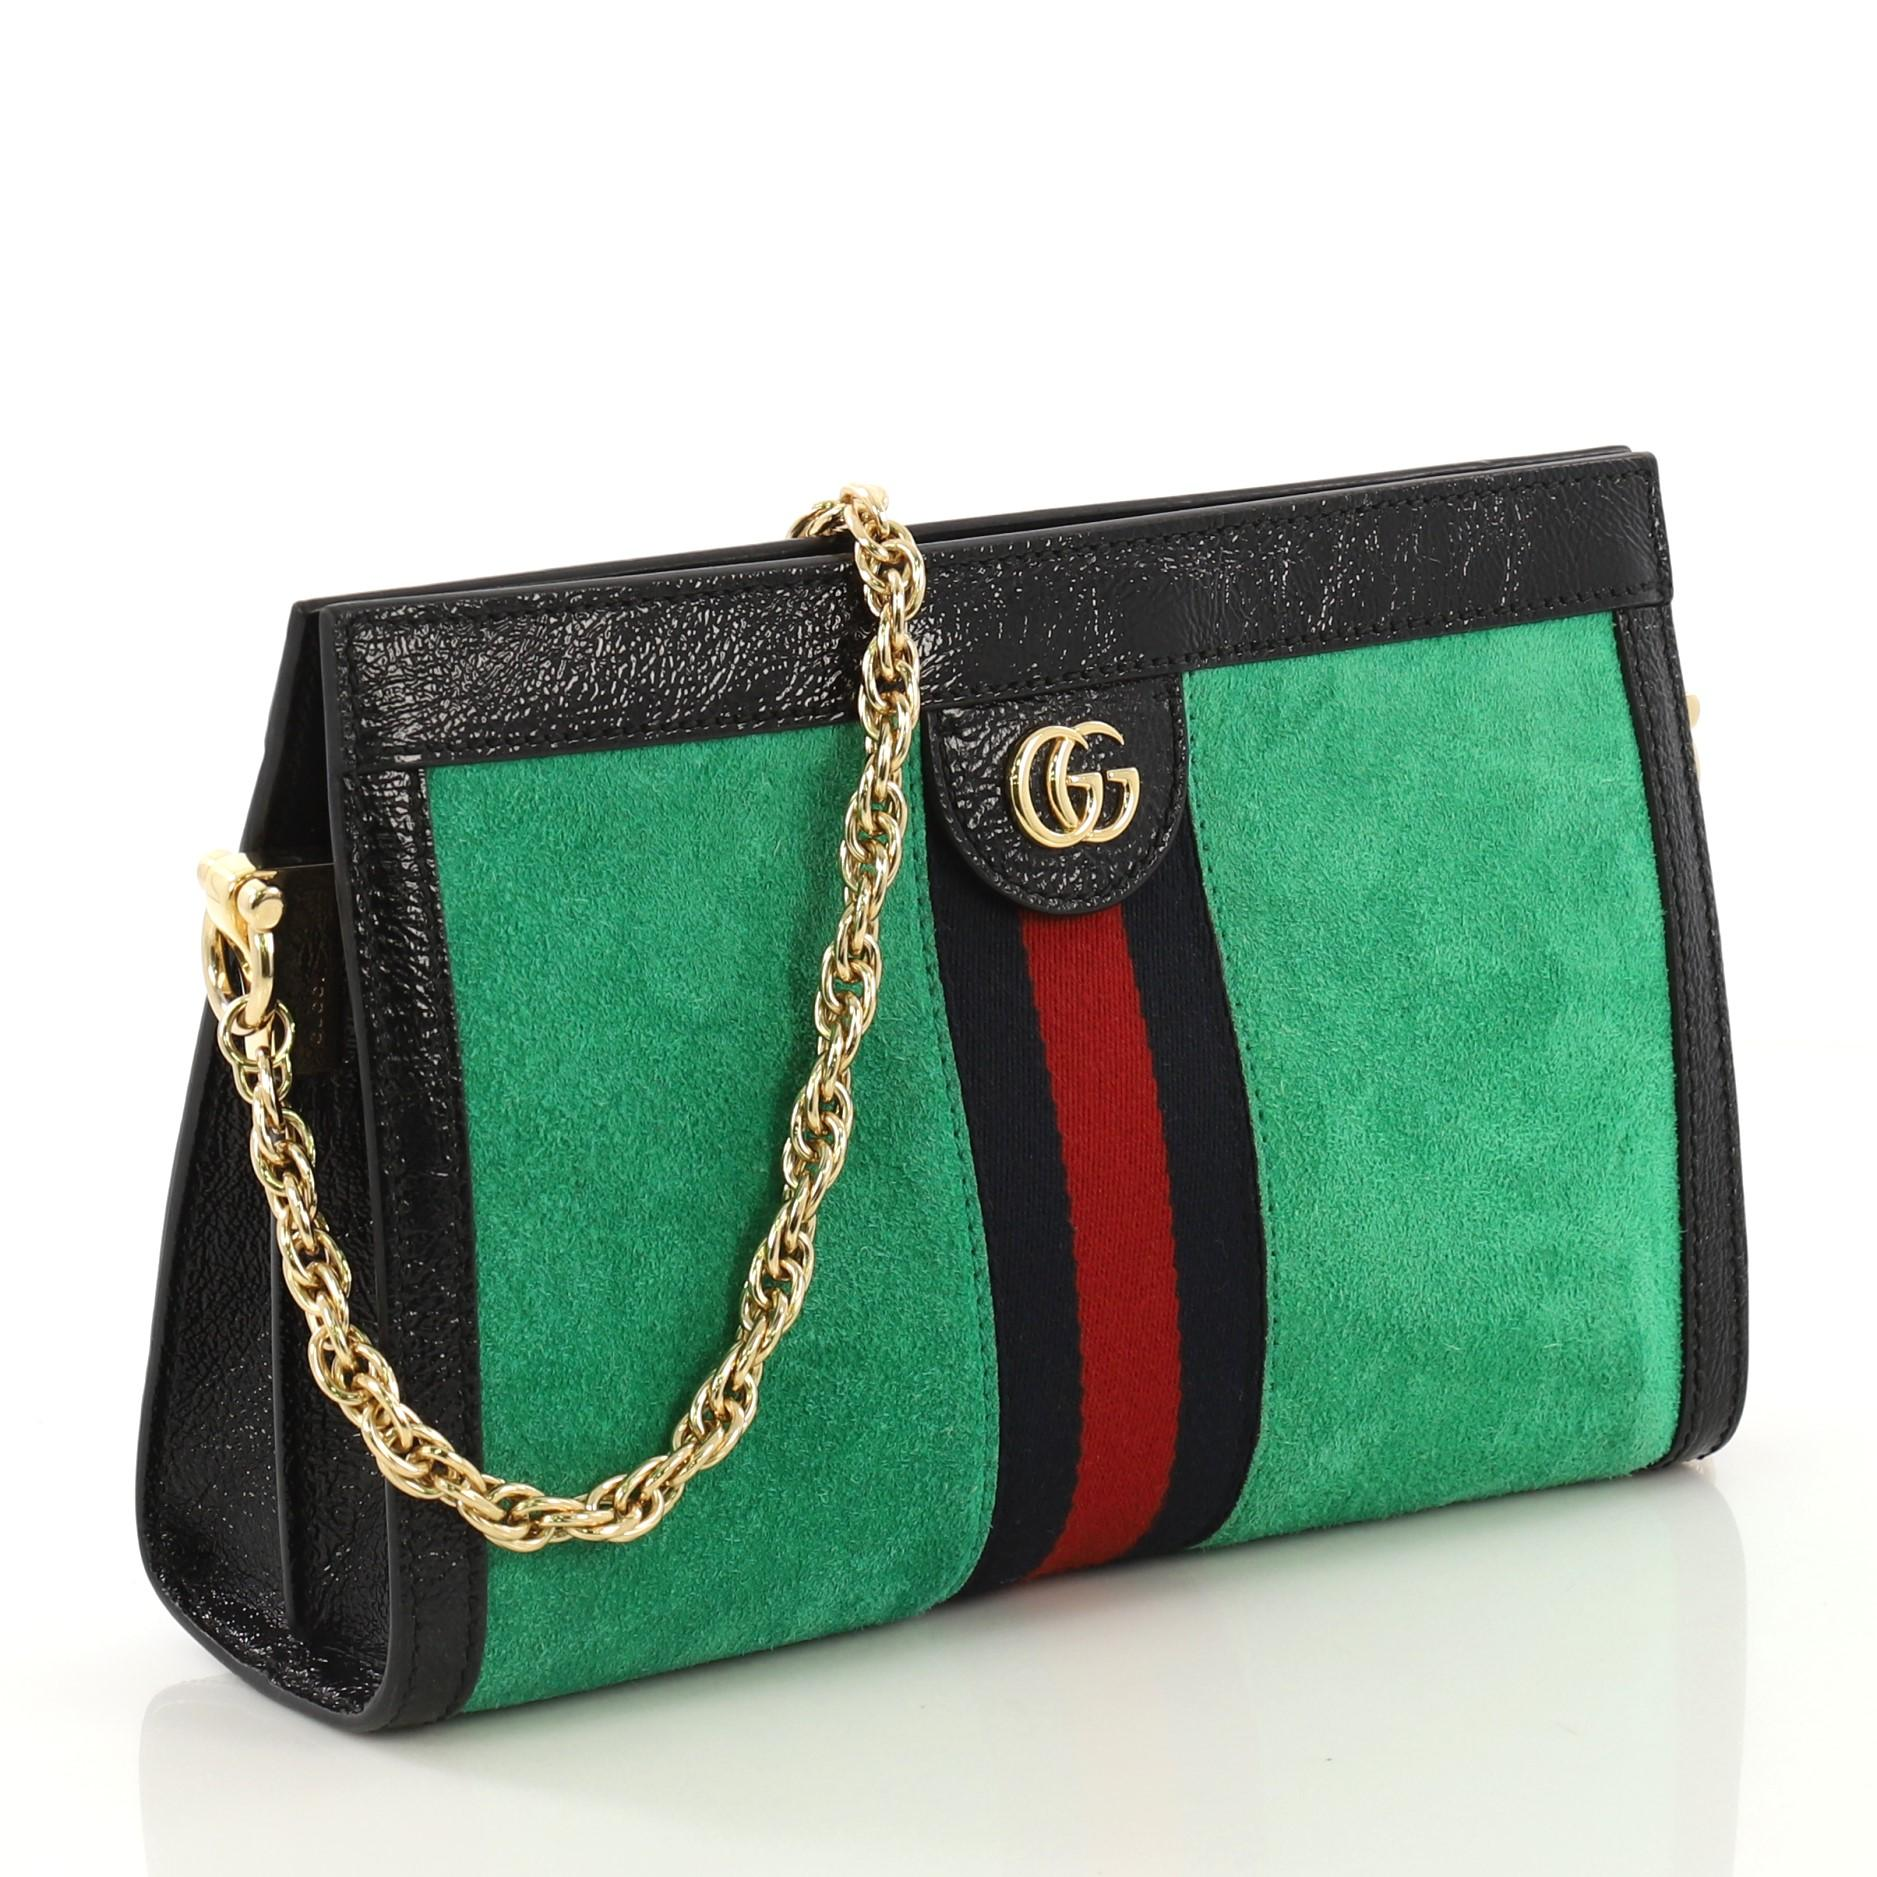 b29e4c03aeda Gucci Ophidia Chain Shoulder Bag Suede Small For Sale at 1stdibs